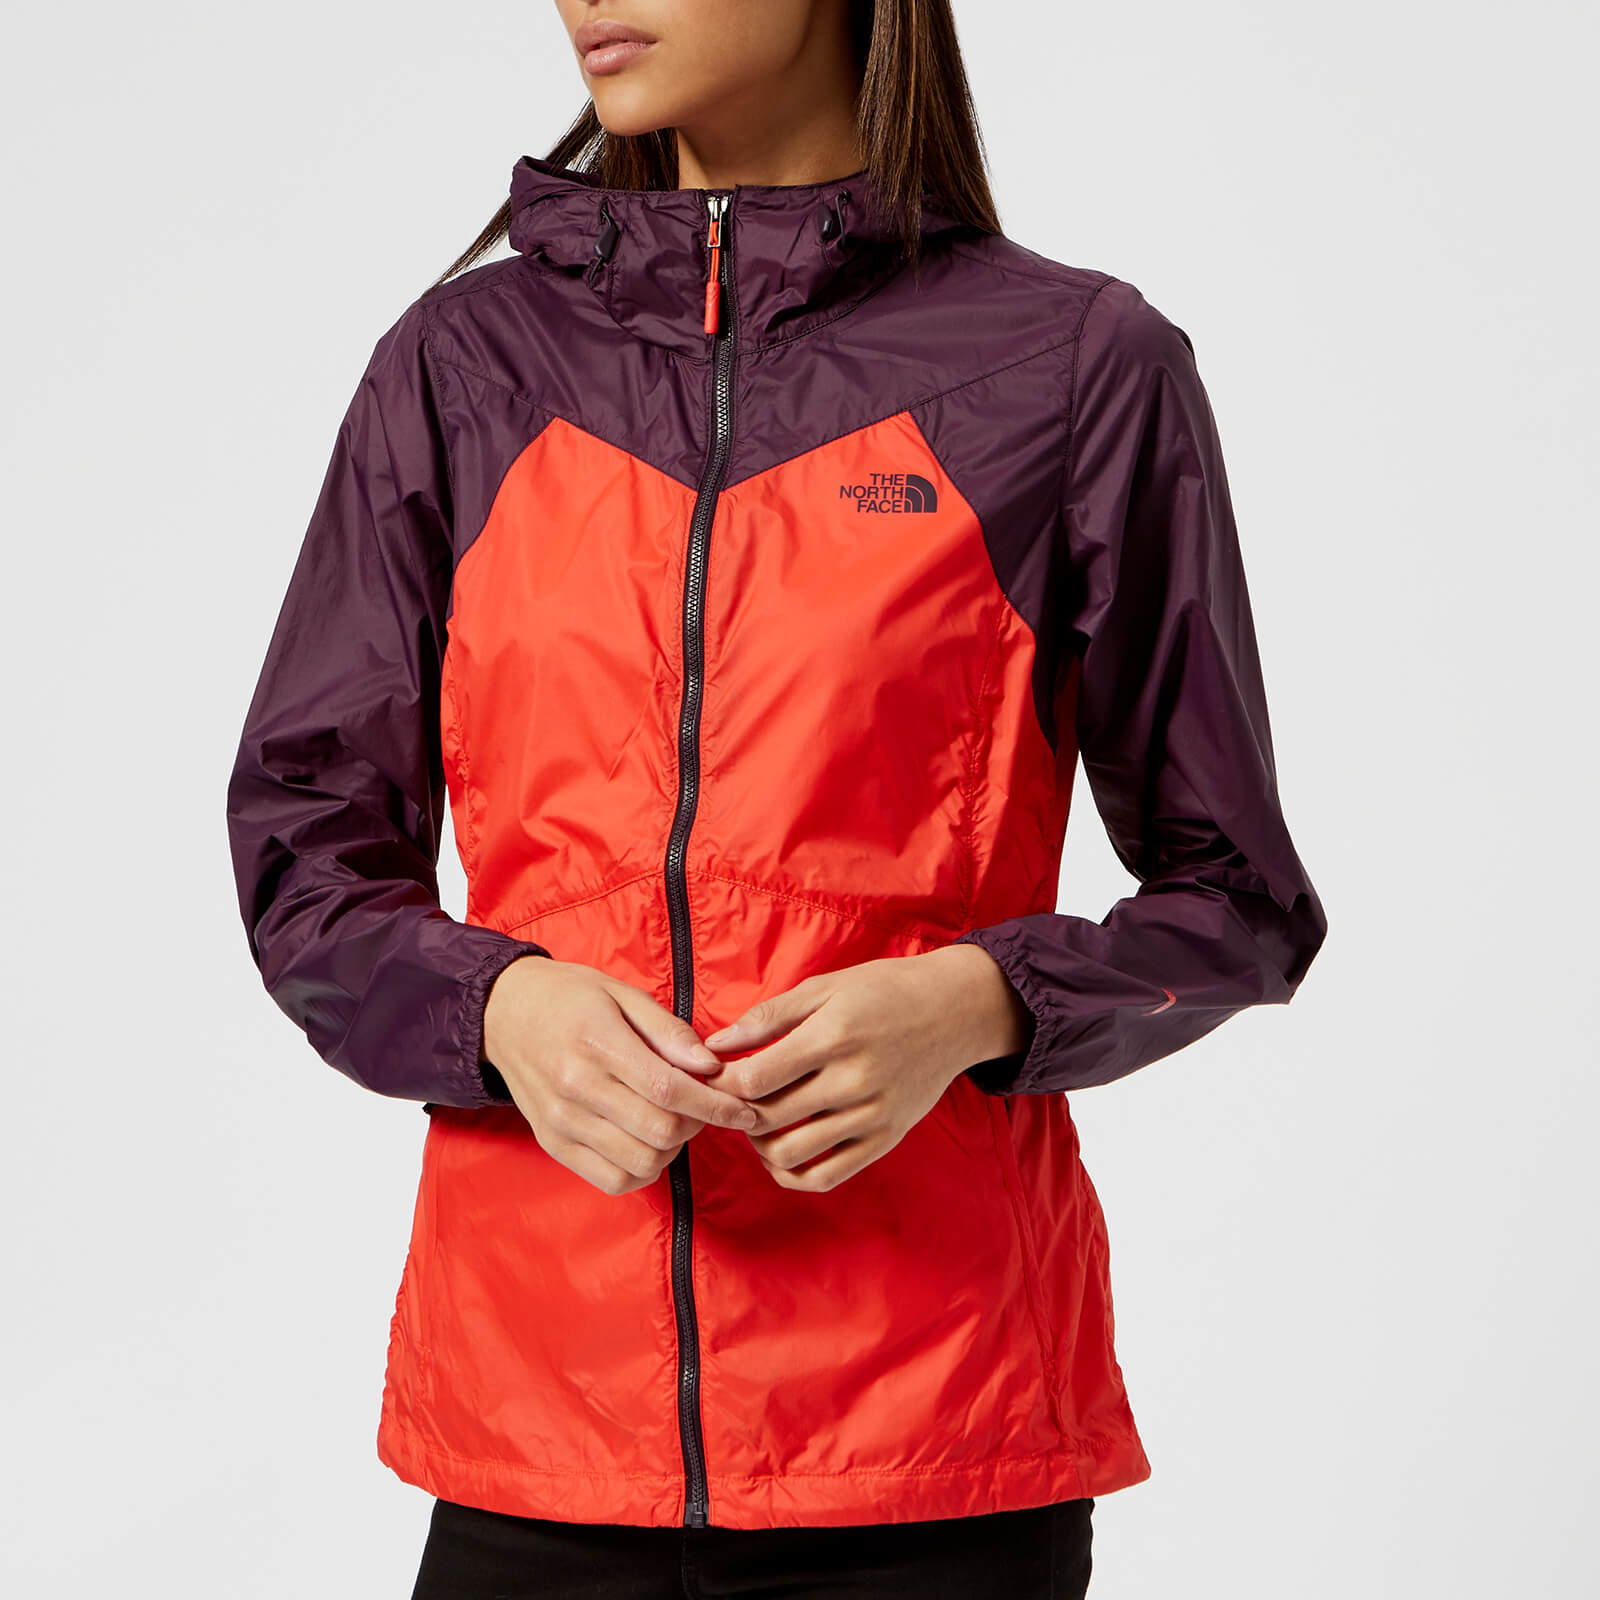 6565bf58a The North Face Women's Flyweight Hoodie - Fire Brick Red/Galaxy Purple